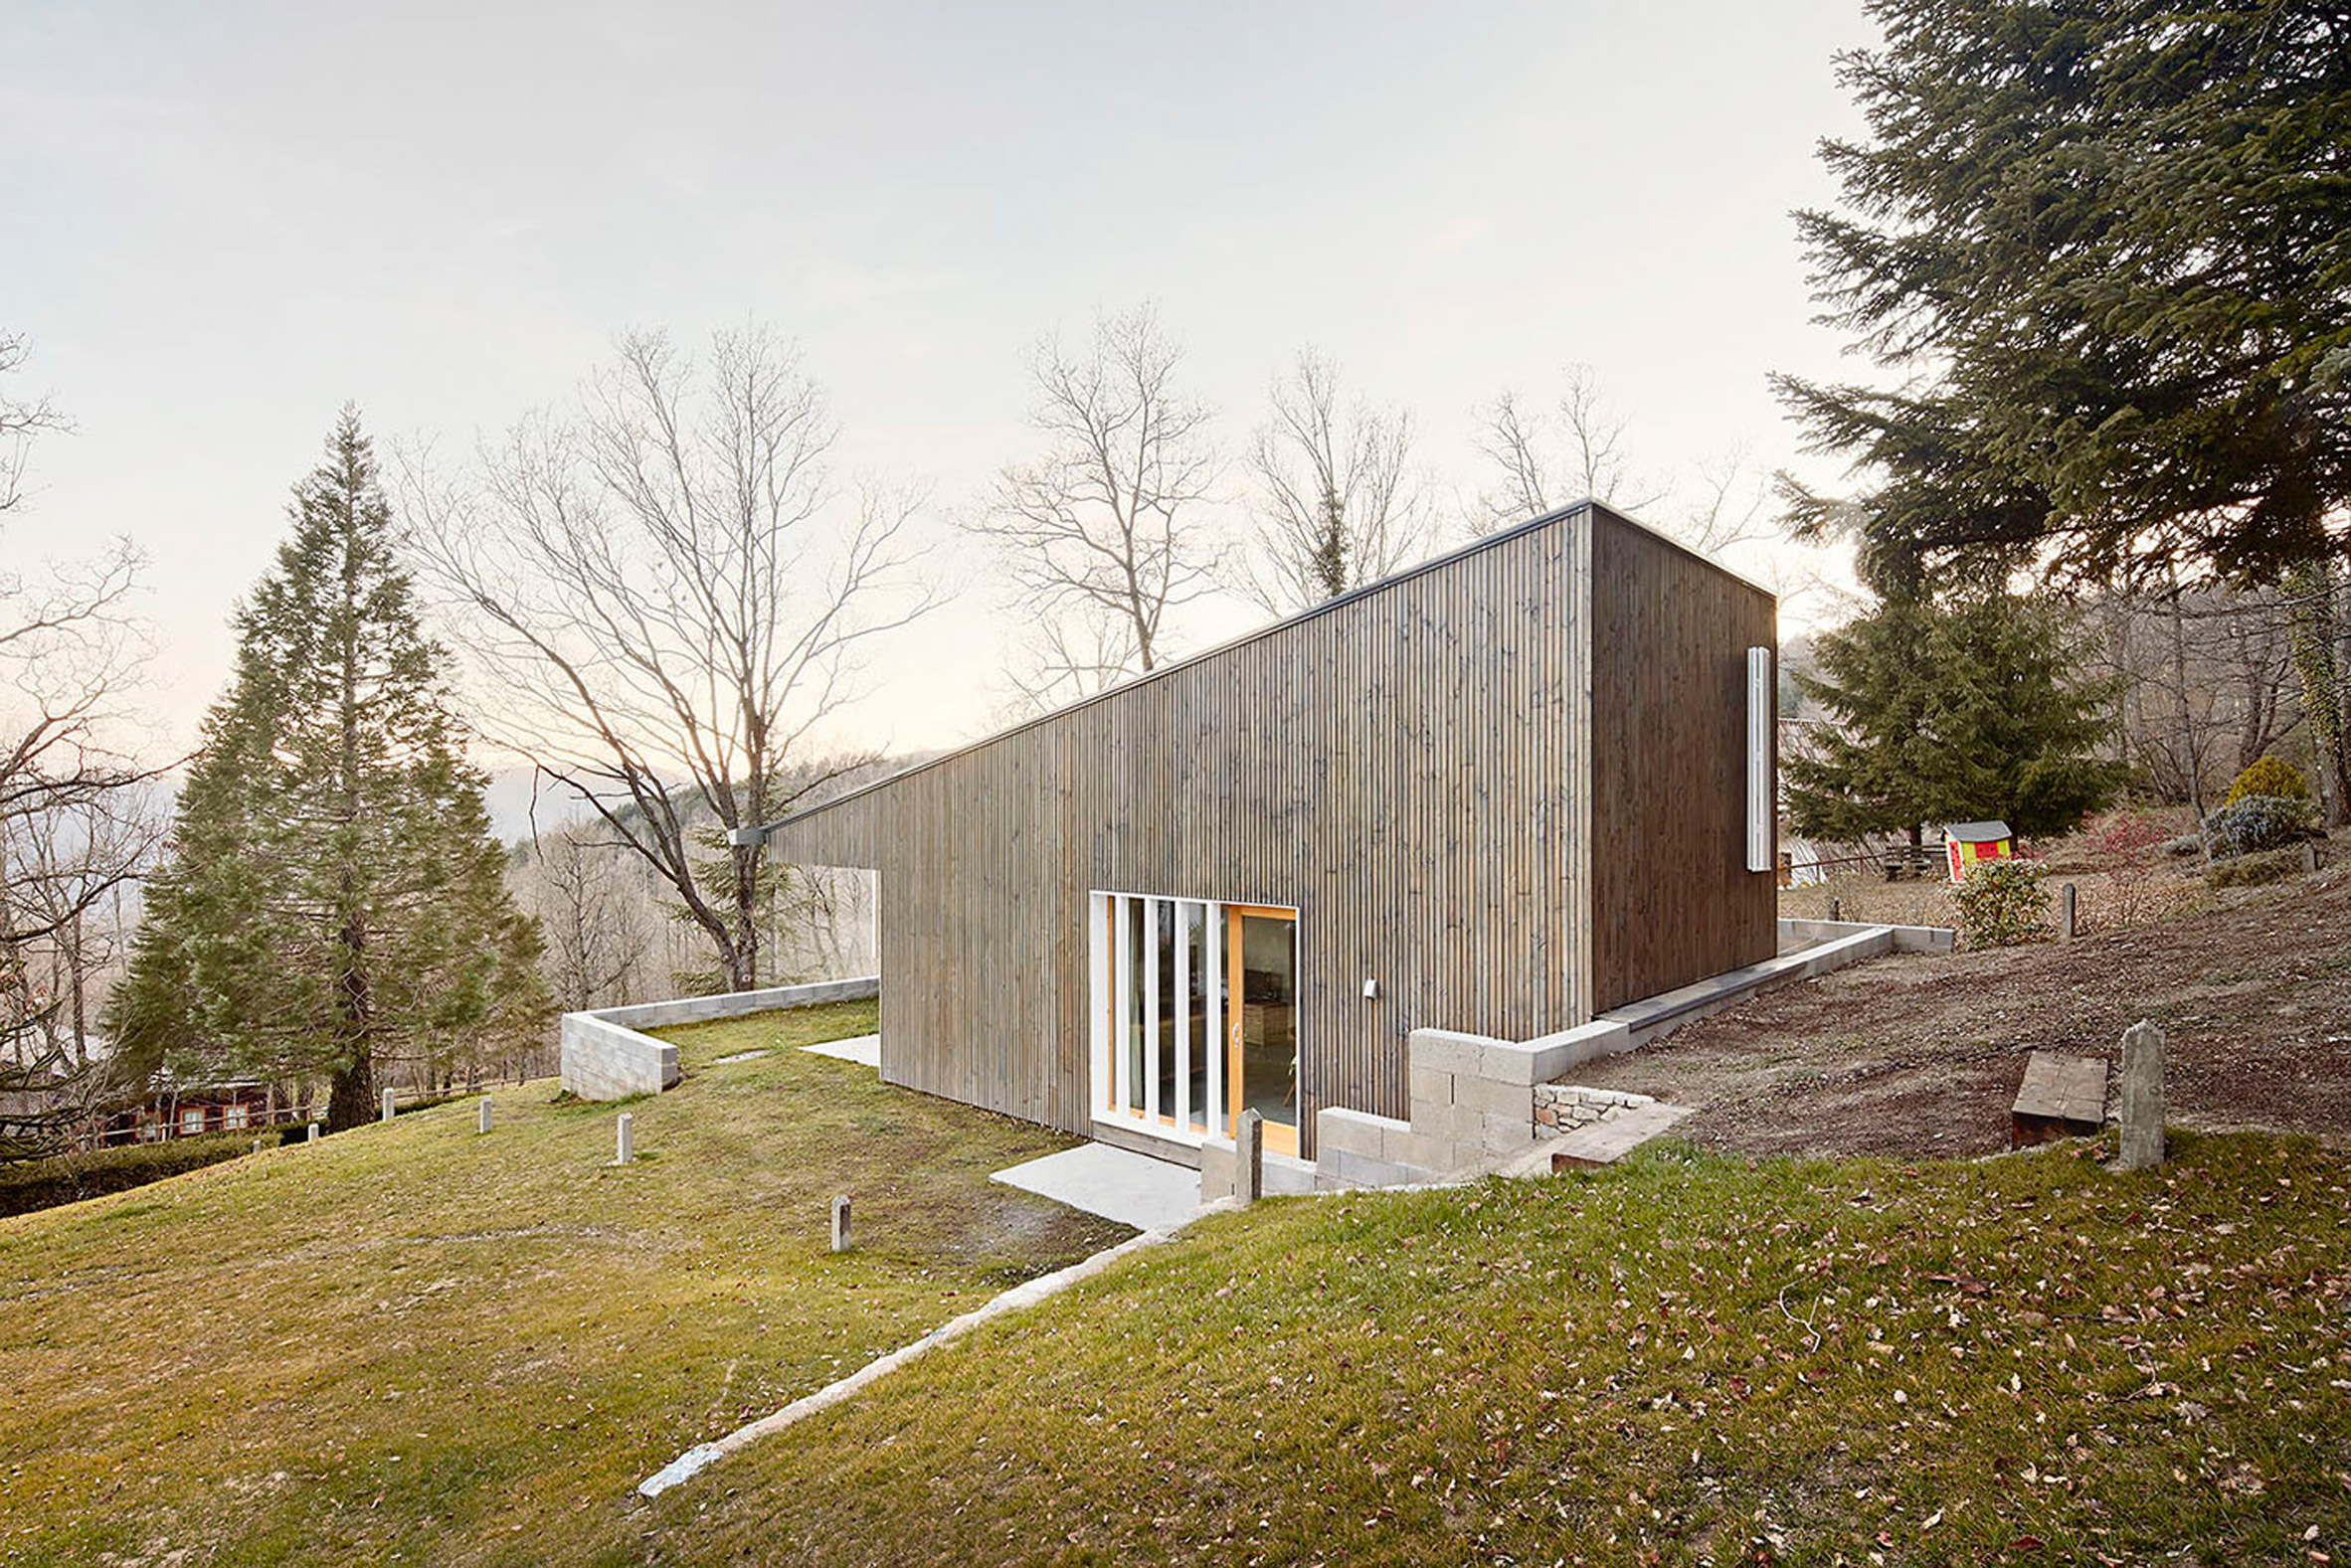 This prefab summer home in the mountains is an ideal example of a cost effective and chic home